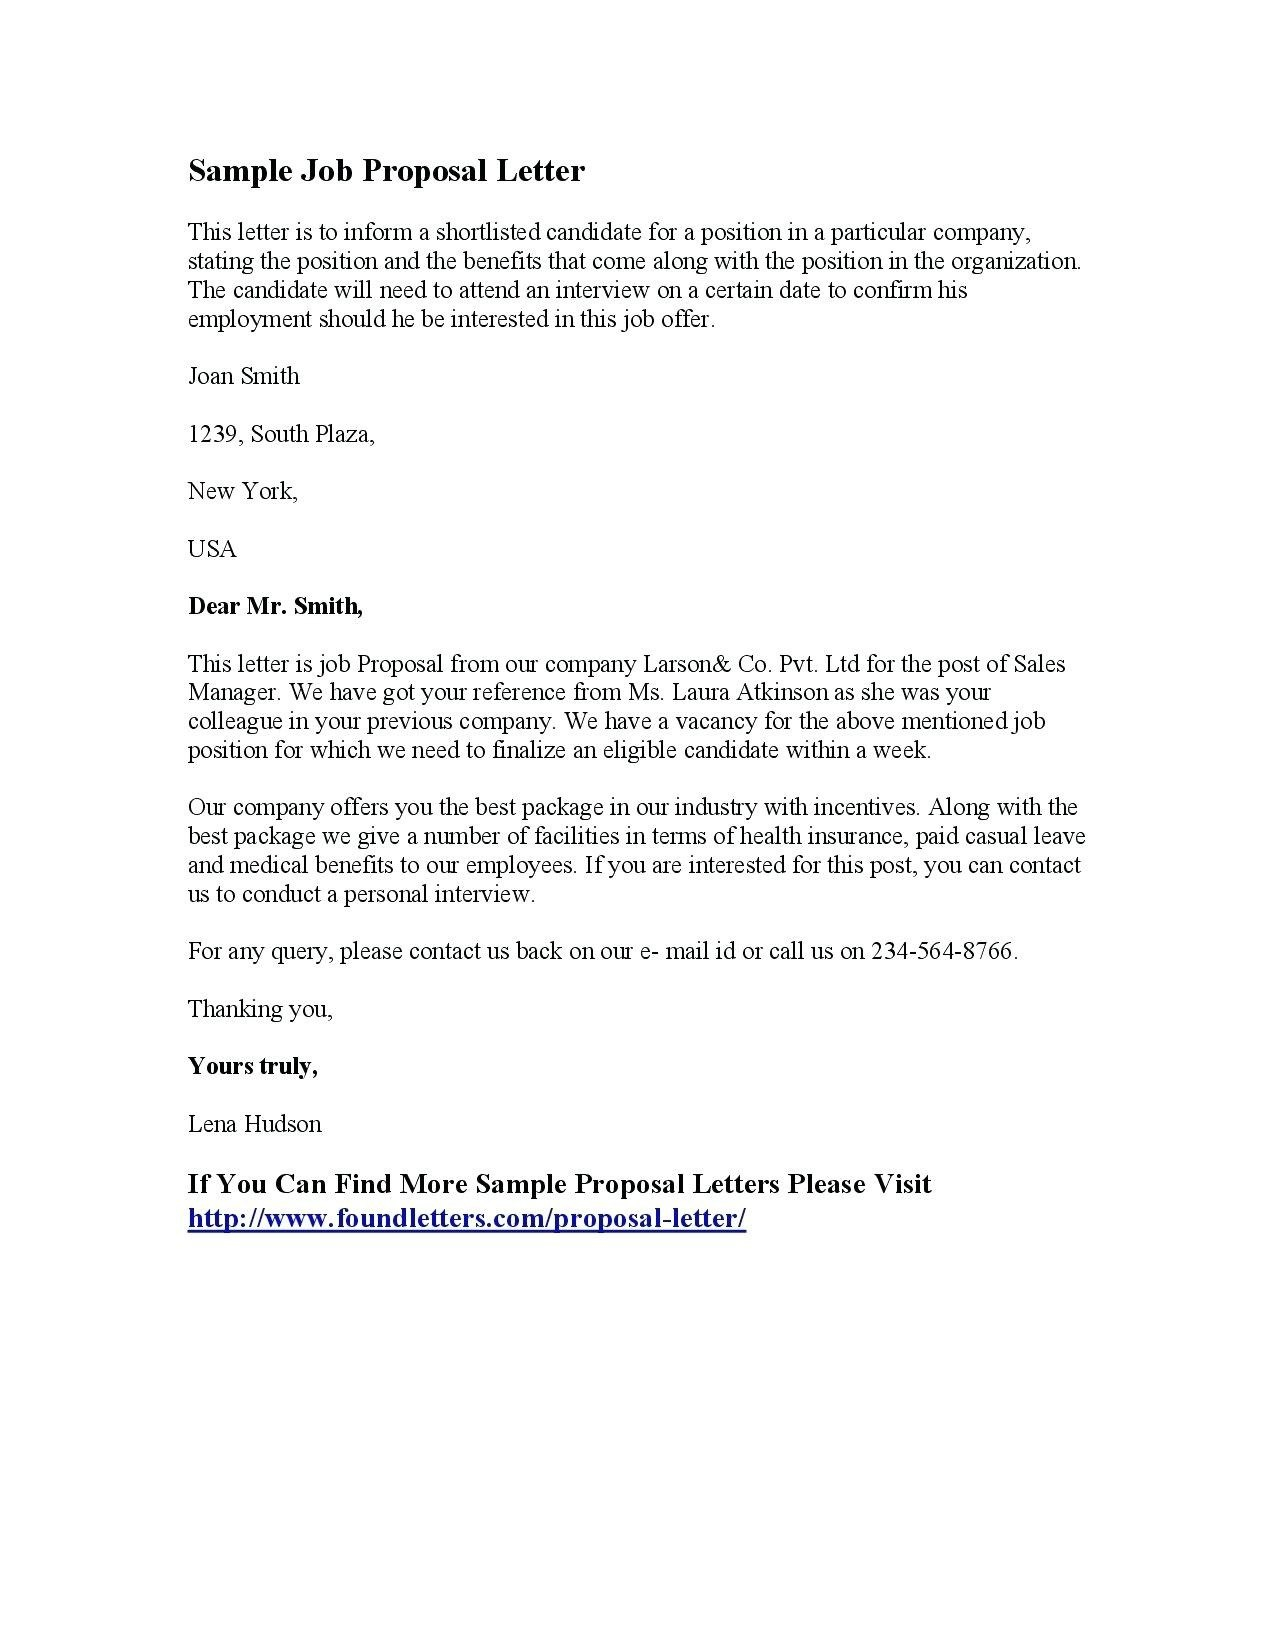 Counter Offer Letter Template Samples  Letter Cover Templates With Regard To Counter Offer Letter Template